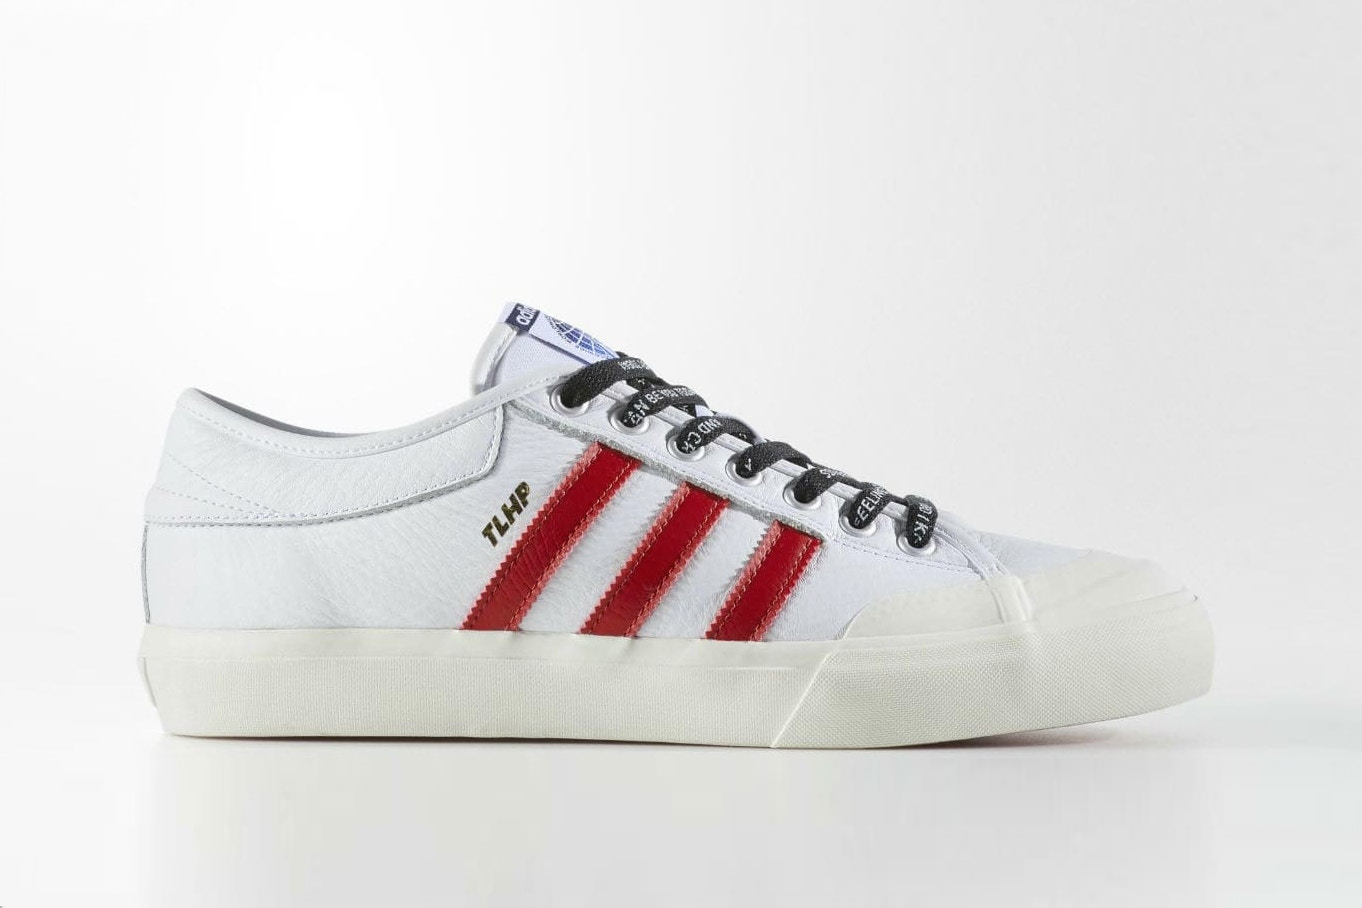 Adidas Skateboarding x A$AP Ferg Trap Lord Collection